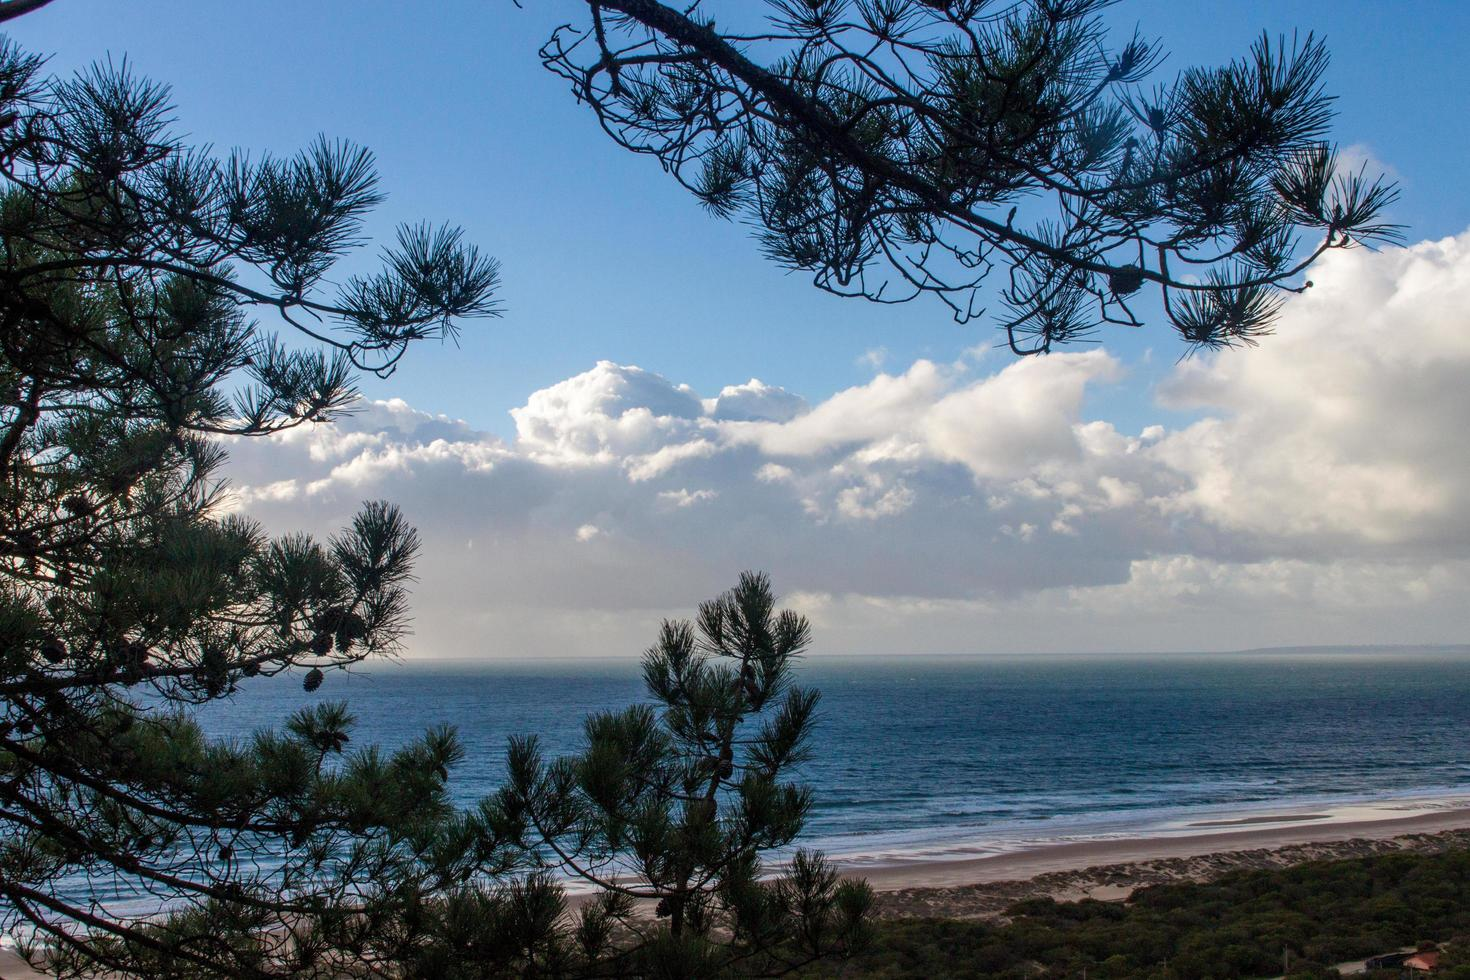 Pine tree branches and beach with cloudy blue sky photo